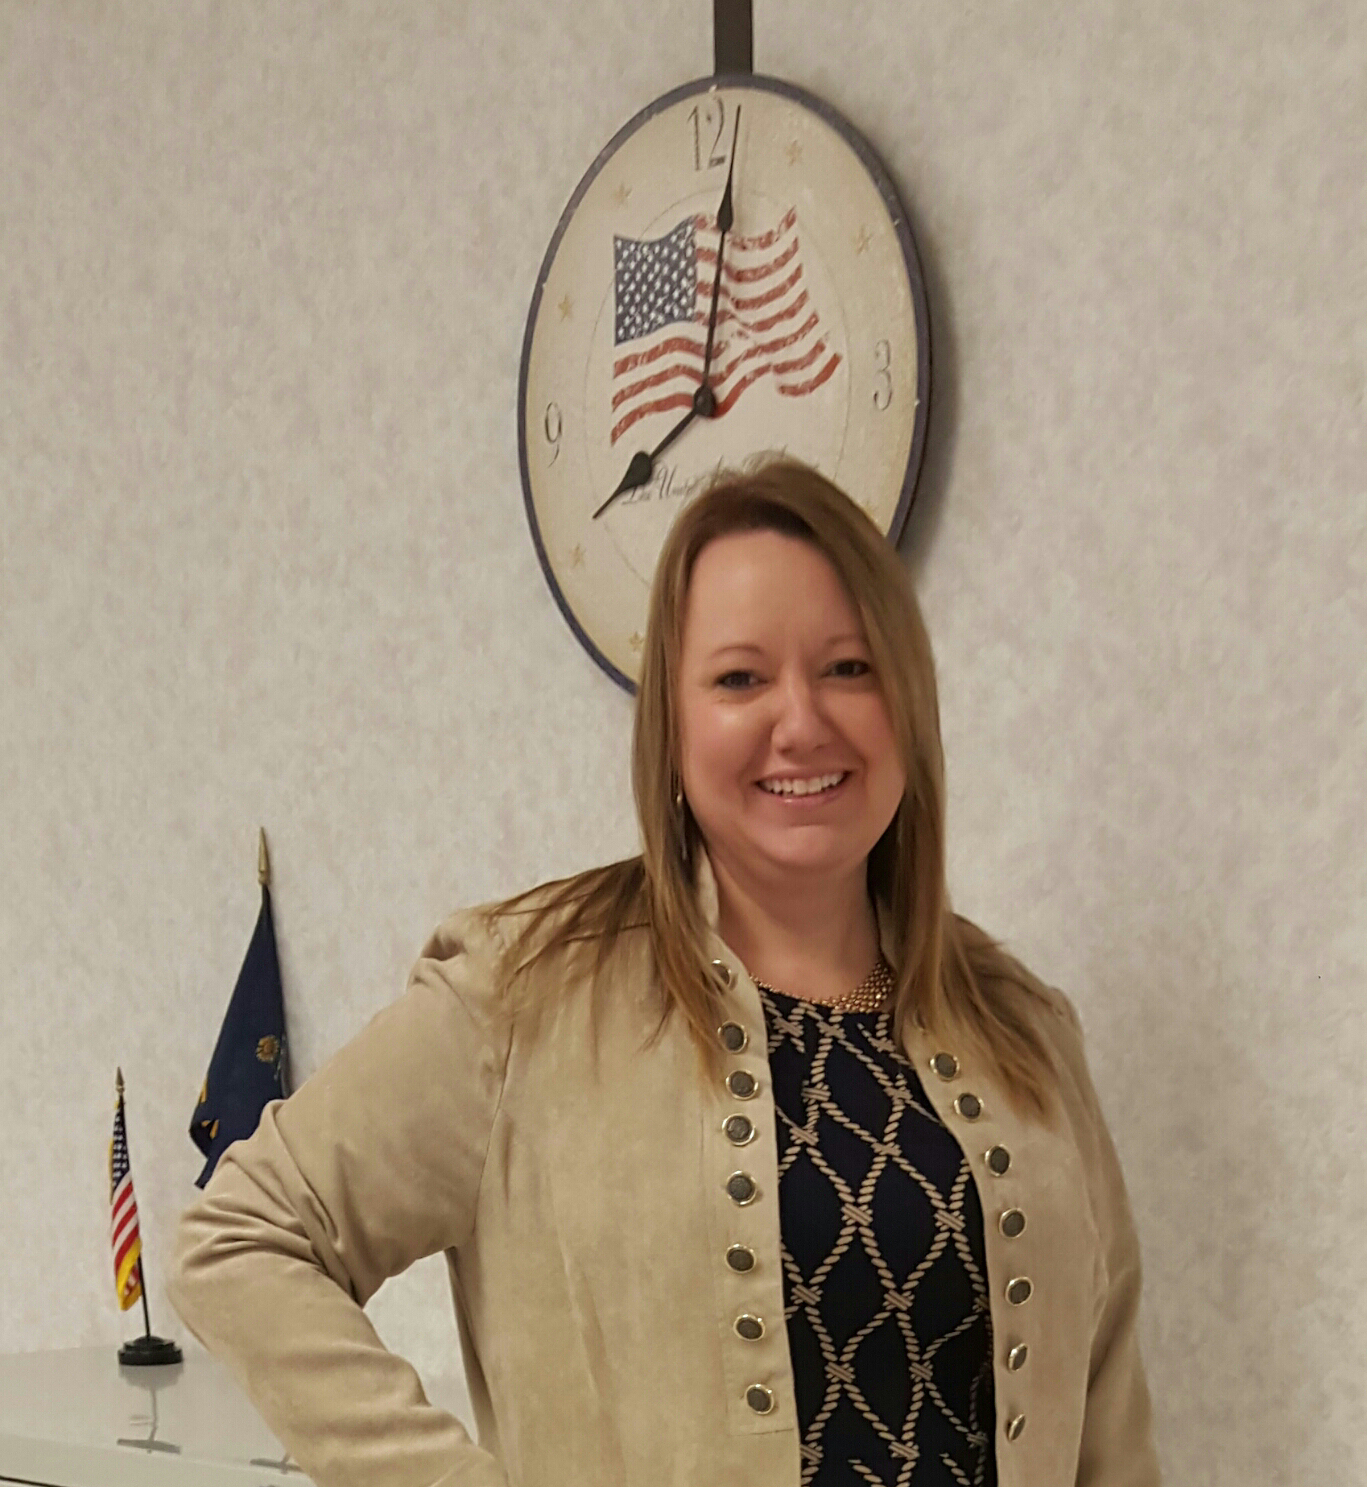 Candidate Files to Run For County Clerk